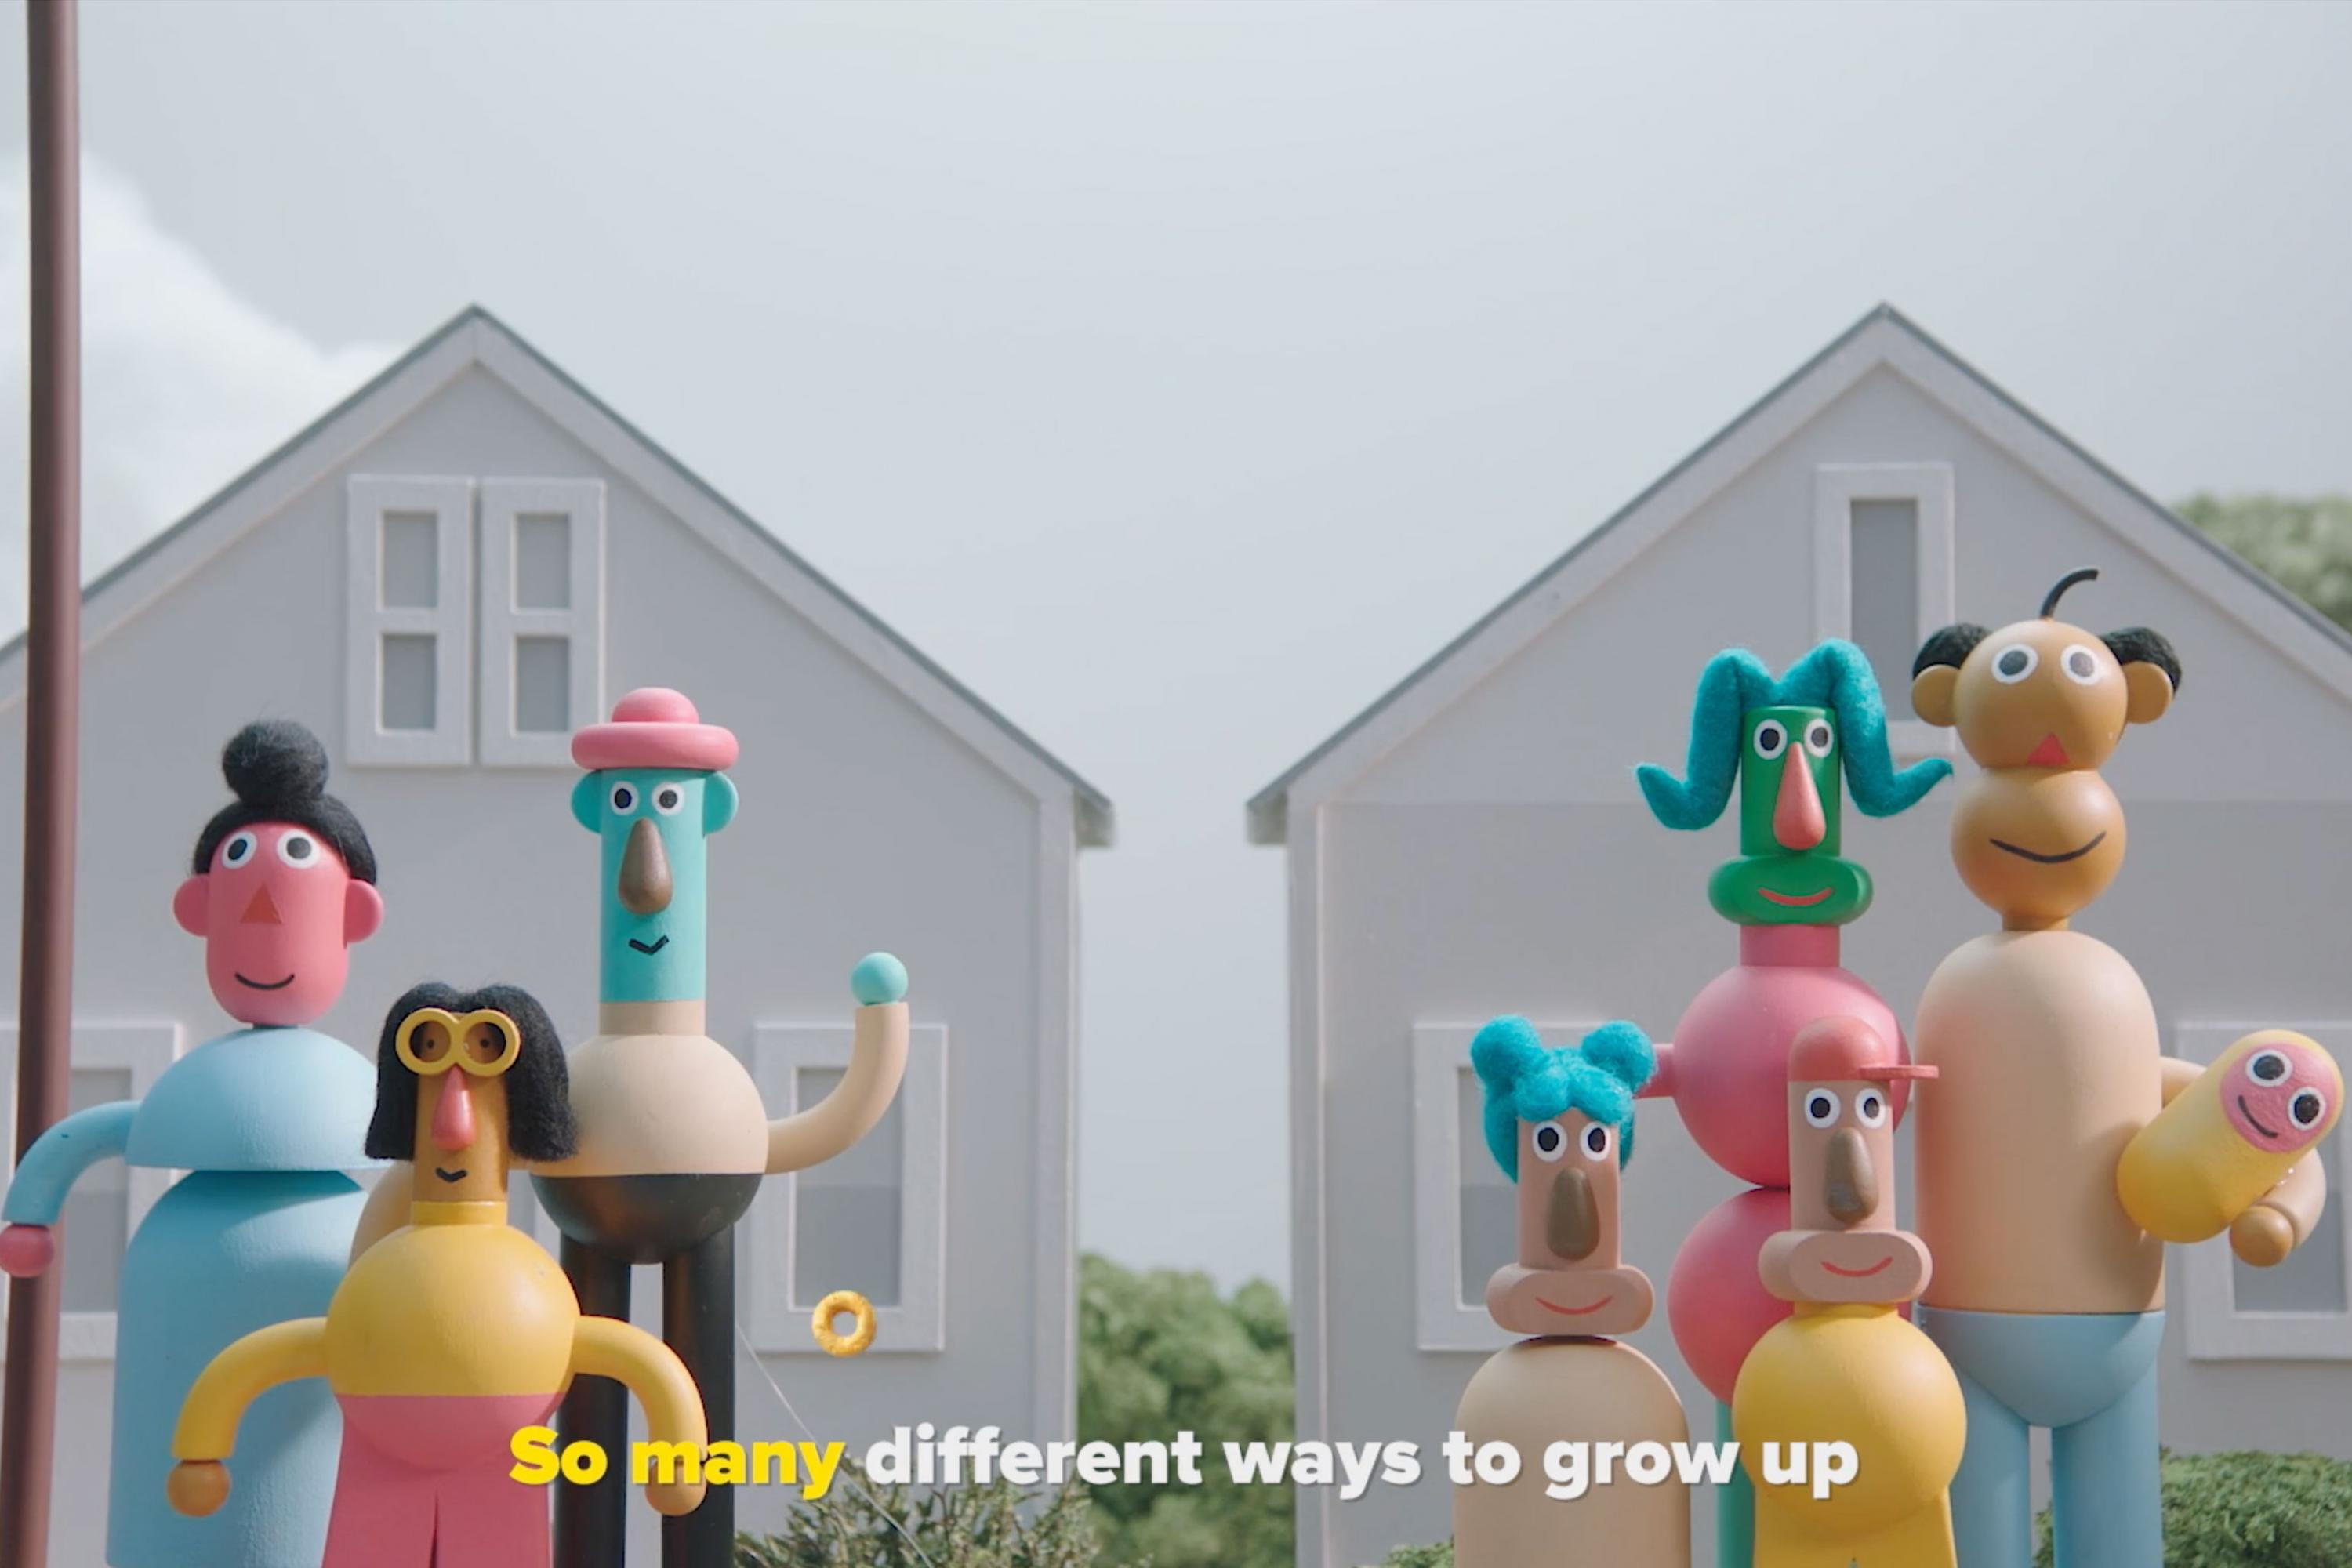 Cheerios celebrates inclusivity, diverse families and more in these animated music videos